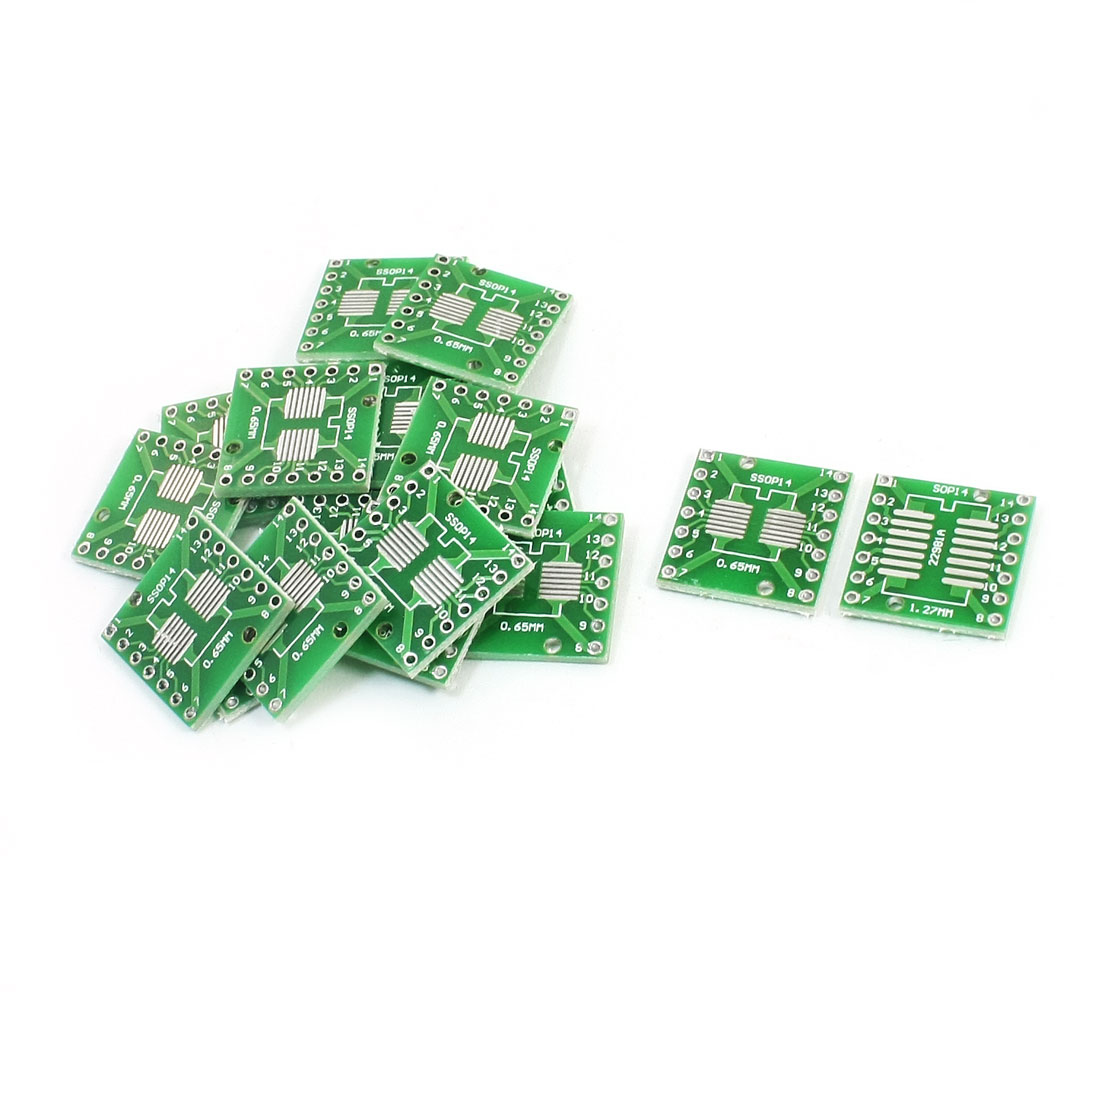 20pcs SMD SOP14 to DIP14 1.27/0.65mm Adapter PCB Converter Plates